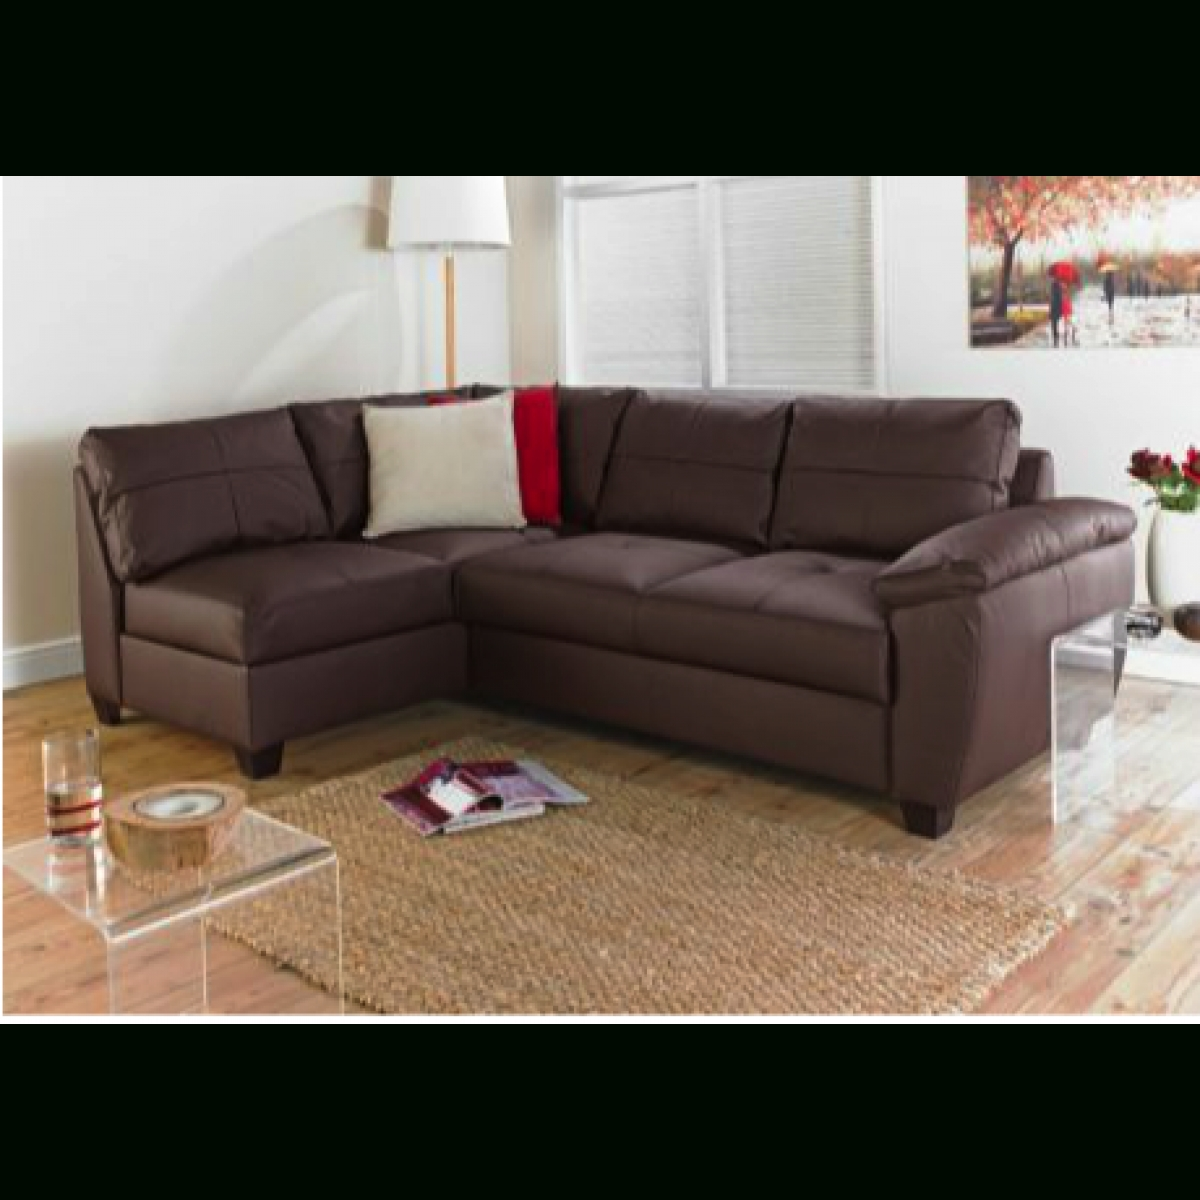 Fernando Leather Left Hand Sofa Bed Corner Group – Chocolate Intended For Leather Corner Sofa Bed (View 20 of 20)